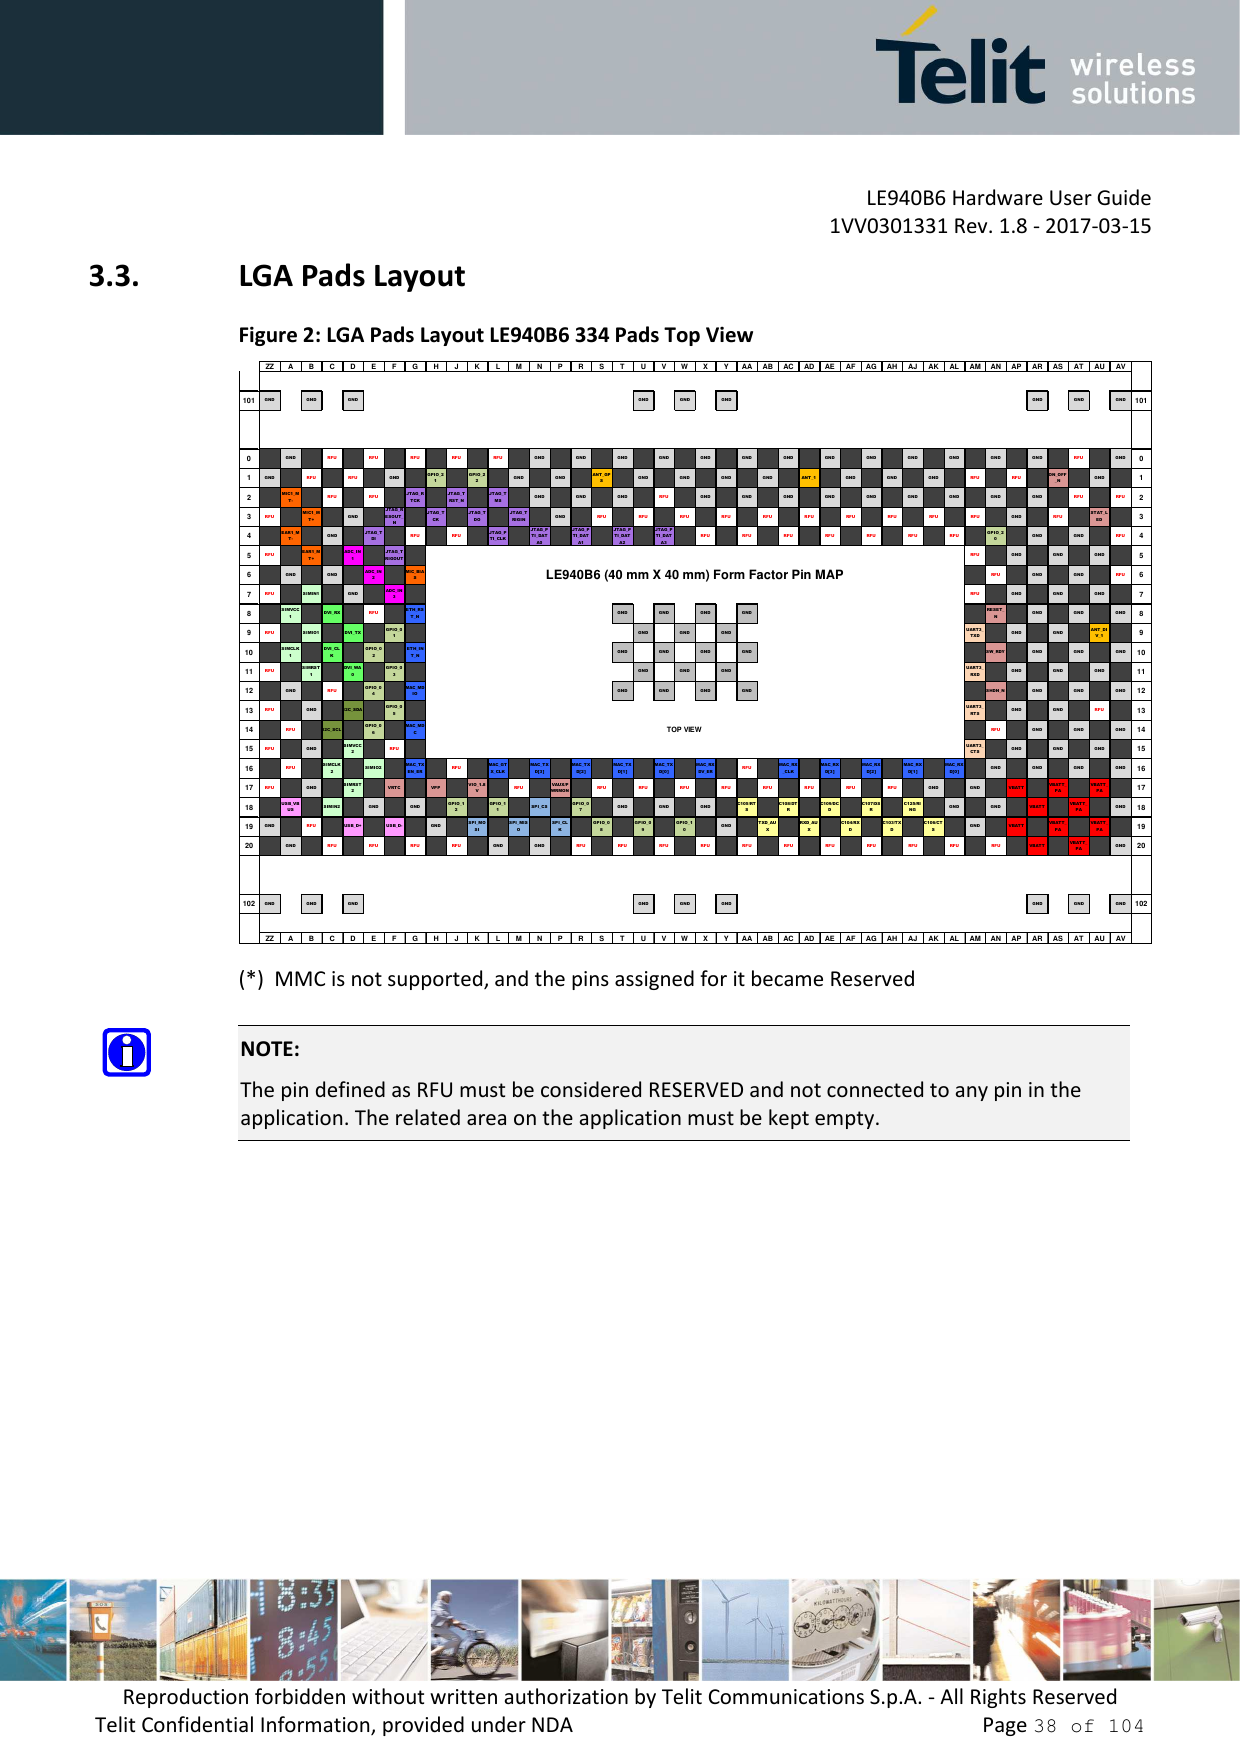 LE940B6 Hardware User Guide     1VV0301331 Rev. 1.8 - 2017-03-15 Reproduction forbidden without written authorization by Telit Communications S.p.A. - All Rights Reserved Telit Confidential Information, provided under NDA                 Page 38 of 104 3.3. LGA Pads Layout Figure 2: LGA Pads Layout LE940B6 334 Pads Top View  (*)  MMC is not supported, and the pins assigned for it became Reserved  NOTE: The pin defined as RFU must be considered RESERVED and not connected to any pin in the application. The related area on the application must be kept empty. ZZ A B C D E F G H J K L M N P R S T U V W X Y AA AB AC AD AE AF AG AH AJ AK AL AM AN AP AR AS AT AU AV101GND GND GN D GND GND GND GND GND GN D1010GND RFU RFU RFU RFU RFU GND GND GND GND GND GND GND GND GND GND GND GND GND RFU GND01GND RFU RFU GND GPIO_21GPIO_22GND GND ANT_GPSGND GND GND GND ANT_1 GND GND GND RFU RFU ON_OFF_N GND12MIC1_MT- RFU RFU JTAG_RTCKJTAG_TRST_NJTAG_TMS GND GND GND RFU GND GND GND GND GND GND GND GND GND RFU RFU23RFU MIC1_MT+ GNDJTAG_RESOUT_NJTAG_TCKJTAG_TDOJTAG_TRIGIN GND RFU RFU RFU RFU RFU RFU RFU RFU RFU RFU GND RFU ST AT_LED34EAR1_MT- GND JTAG_TDI RFU RFU JTAG_PTI_CLKJTAG_PTI_DATA0JTAG_PTI_DATA1JTAG_PTI_DATA2JTAG_PTI_DATA3RFU RFU RFU RFU RFU RFU RFU GPIO_20GND GND RFU45RFU EAR1_MT+ADC_IN1JTAG_TRIGOUT RFU GND GND GND56GND GND ADC_IN2MIC_BIASRFU GND GND RFU67RFU SIMIN1 GND ADC_IN3RFU GND GND GND78SIMVCC1DVI_RX RFU ETH_RST_N GND GND GND GND RESET_NGND GND GND89RFU SIMIO1 DVI_TX GPIO_01GND GND GND UART3_TXD GND GND ANT_DIV_1910SIMCLK1DVI_CLKGPIO_02ETH_INT_N GND GND GND GND SW_RDY GND GND GND1011RFU SIMRST1DVI_WA0GPIO_03GND GND GND UART3_RXD GND GND GND1112GND RFU GPIO_04MAC_MDIO GND GND GND GND SHDN_N GND GND GND1213RFU GND I2C_SDA GPIO_05UART3_RTS GND GND RFU1314RFU I2C_SCL GPIO_06MAC_MDCRFU GND GND GND1415RFU GND SIMVCC2RFU UART3_CTS GND GND GND1516RFU SIMCLK2SIMIO2 MAC_TXEN_ER RFU MAC_GTX_CLKMAC_TXD[3]MAC_TXD[2]MAC_TXD[1]MAC_TXD[0]MAC_RXDV_ER RFU MAC_RX_CLKMAC_RXD[3]MAC_RXD[2]MAC_RXD[1]MA